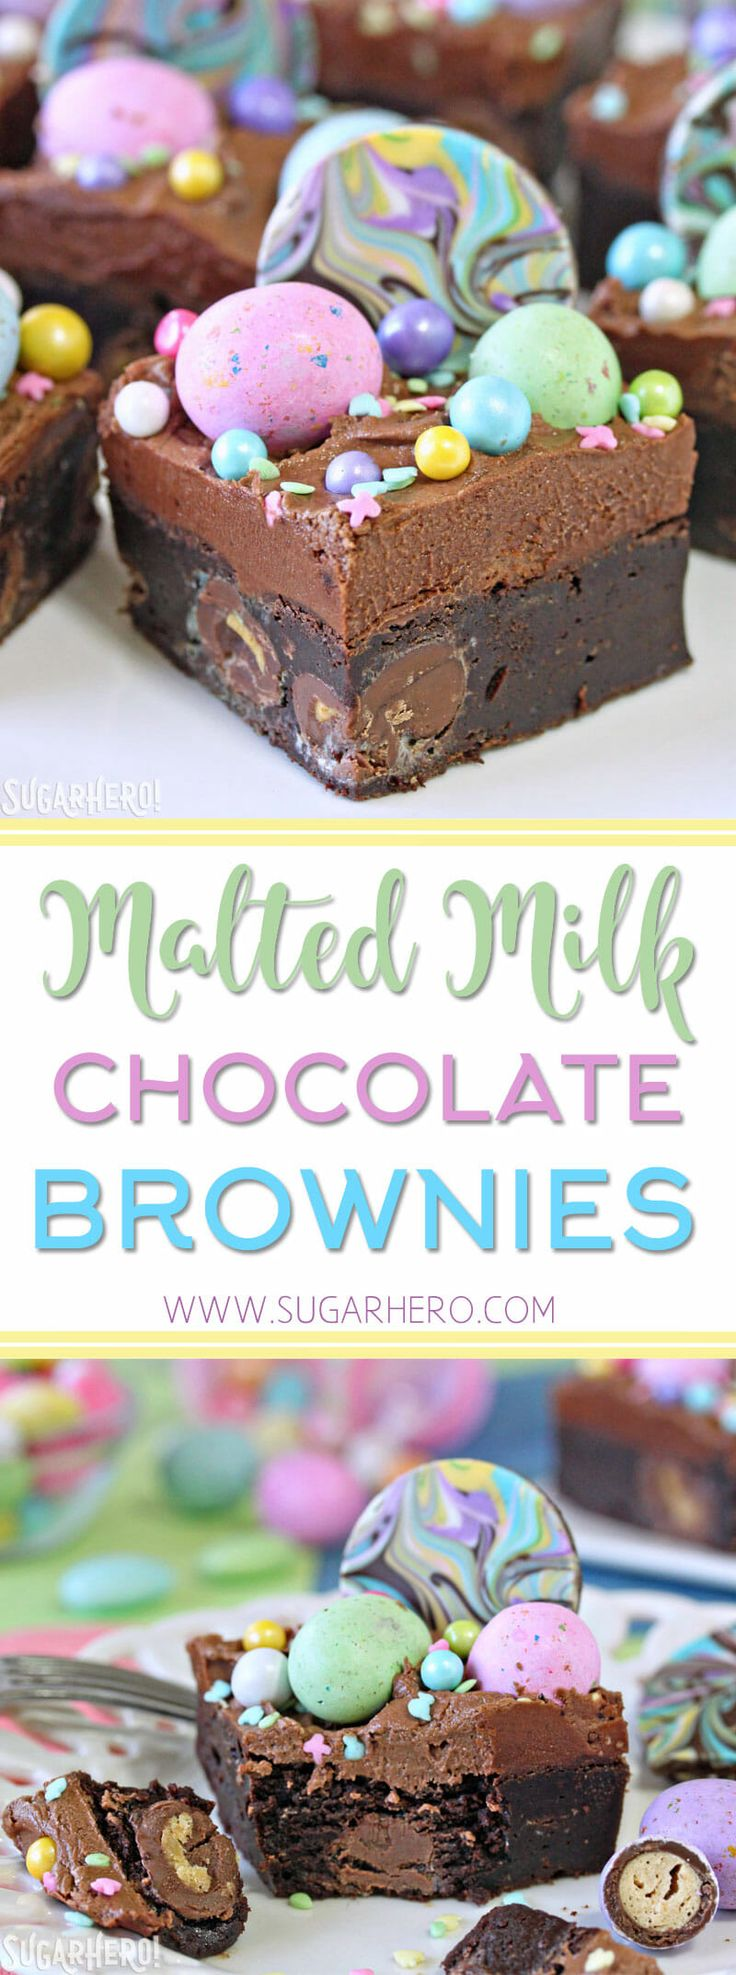 These Malted Milk Chocolate Brownies are ultra-fudgy brownies, topped with chocolate frosting and LOTS of fun sprinkles and candies! Perfect for Easter, showers, and parties. | From SugarHero.com